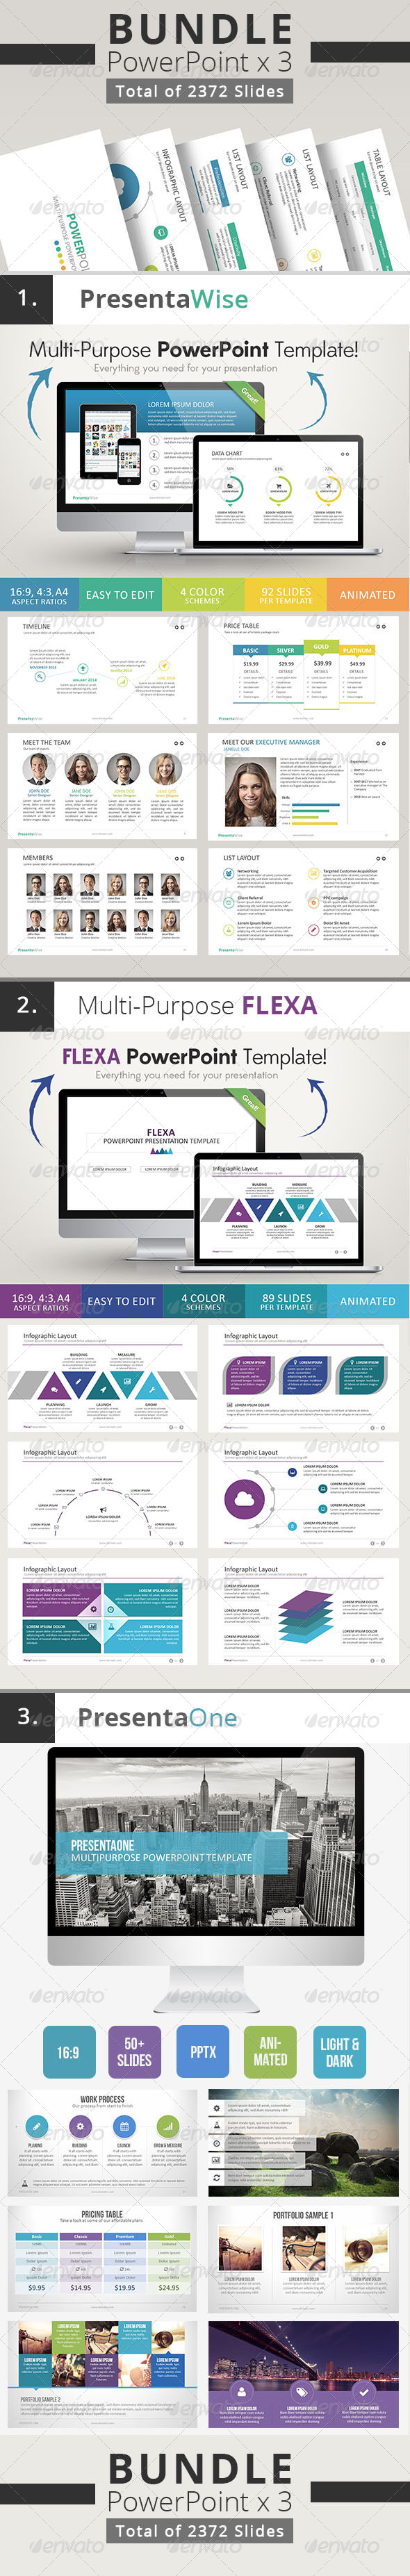 GraphicRiver 3 x Multi-Purpose Powerpoint Bundle 8512307